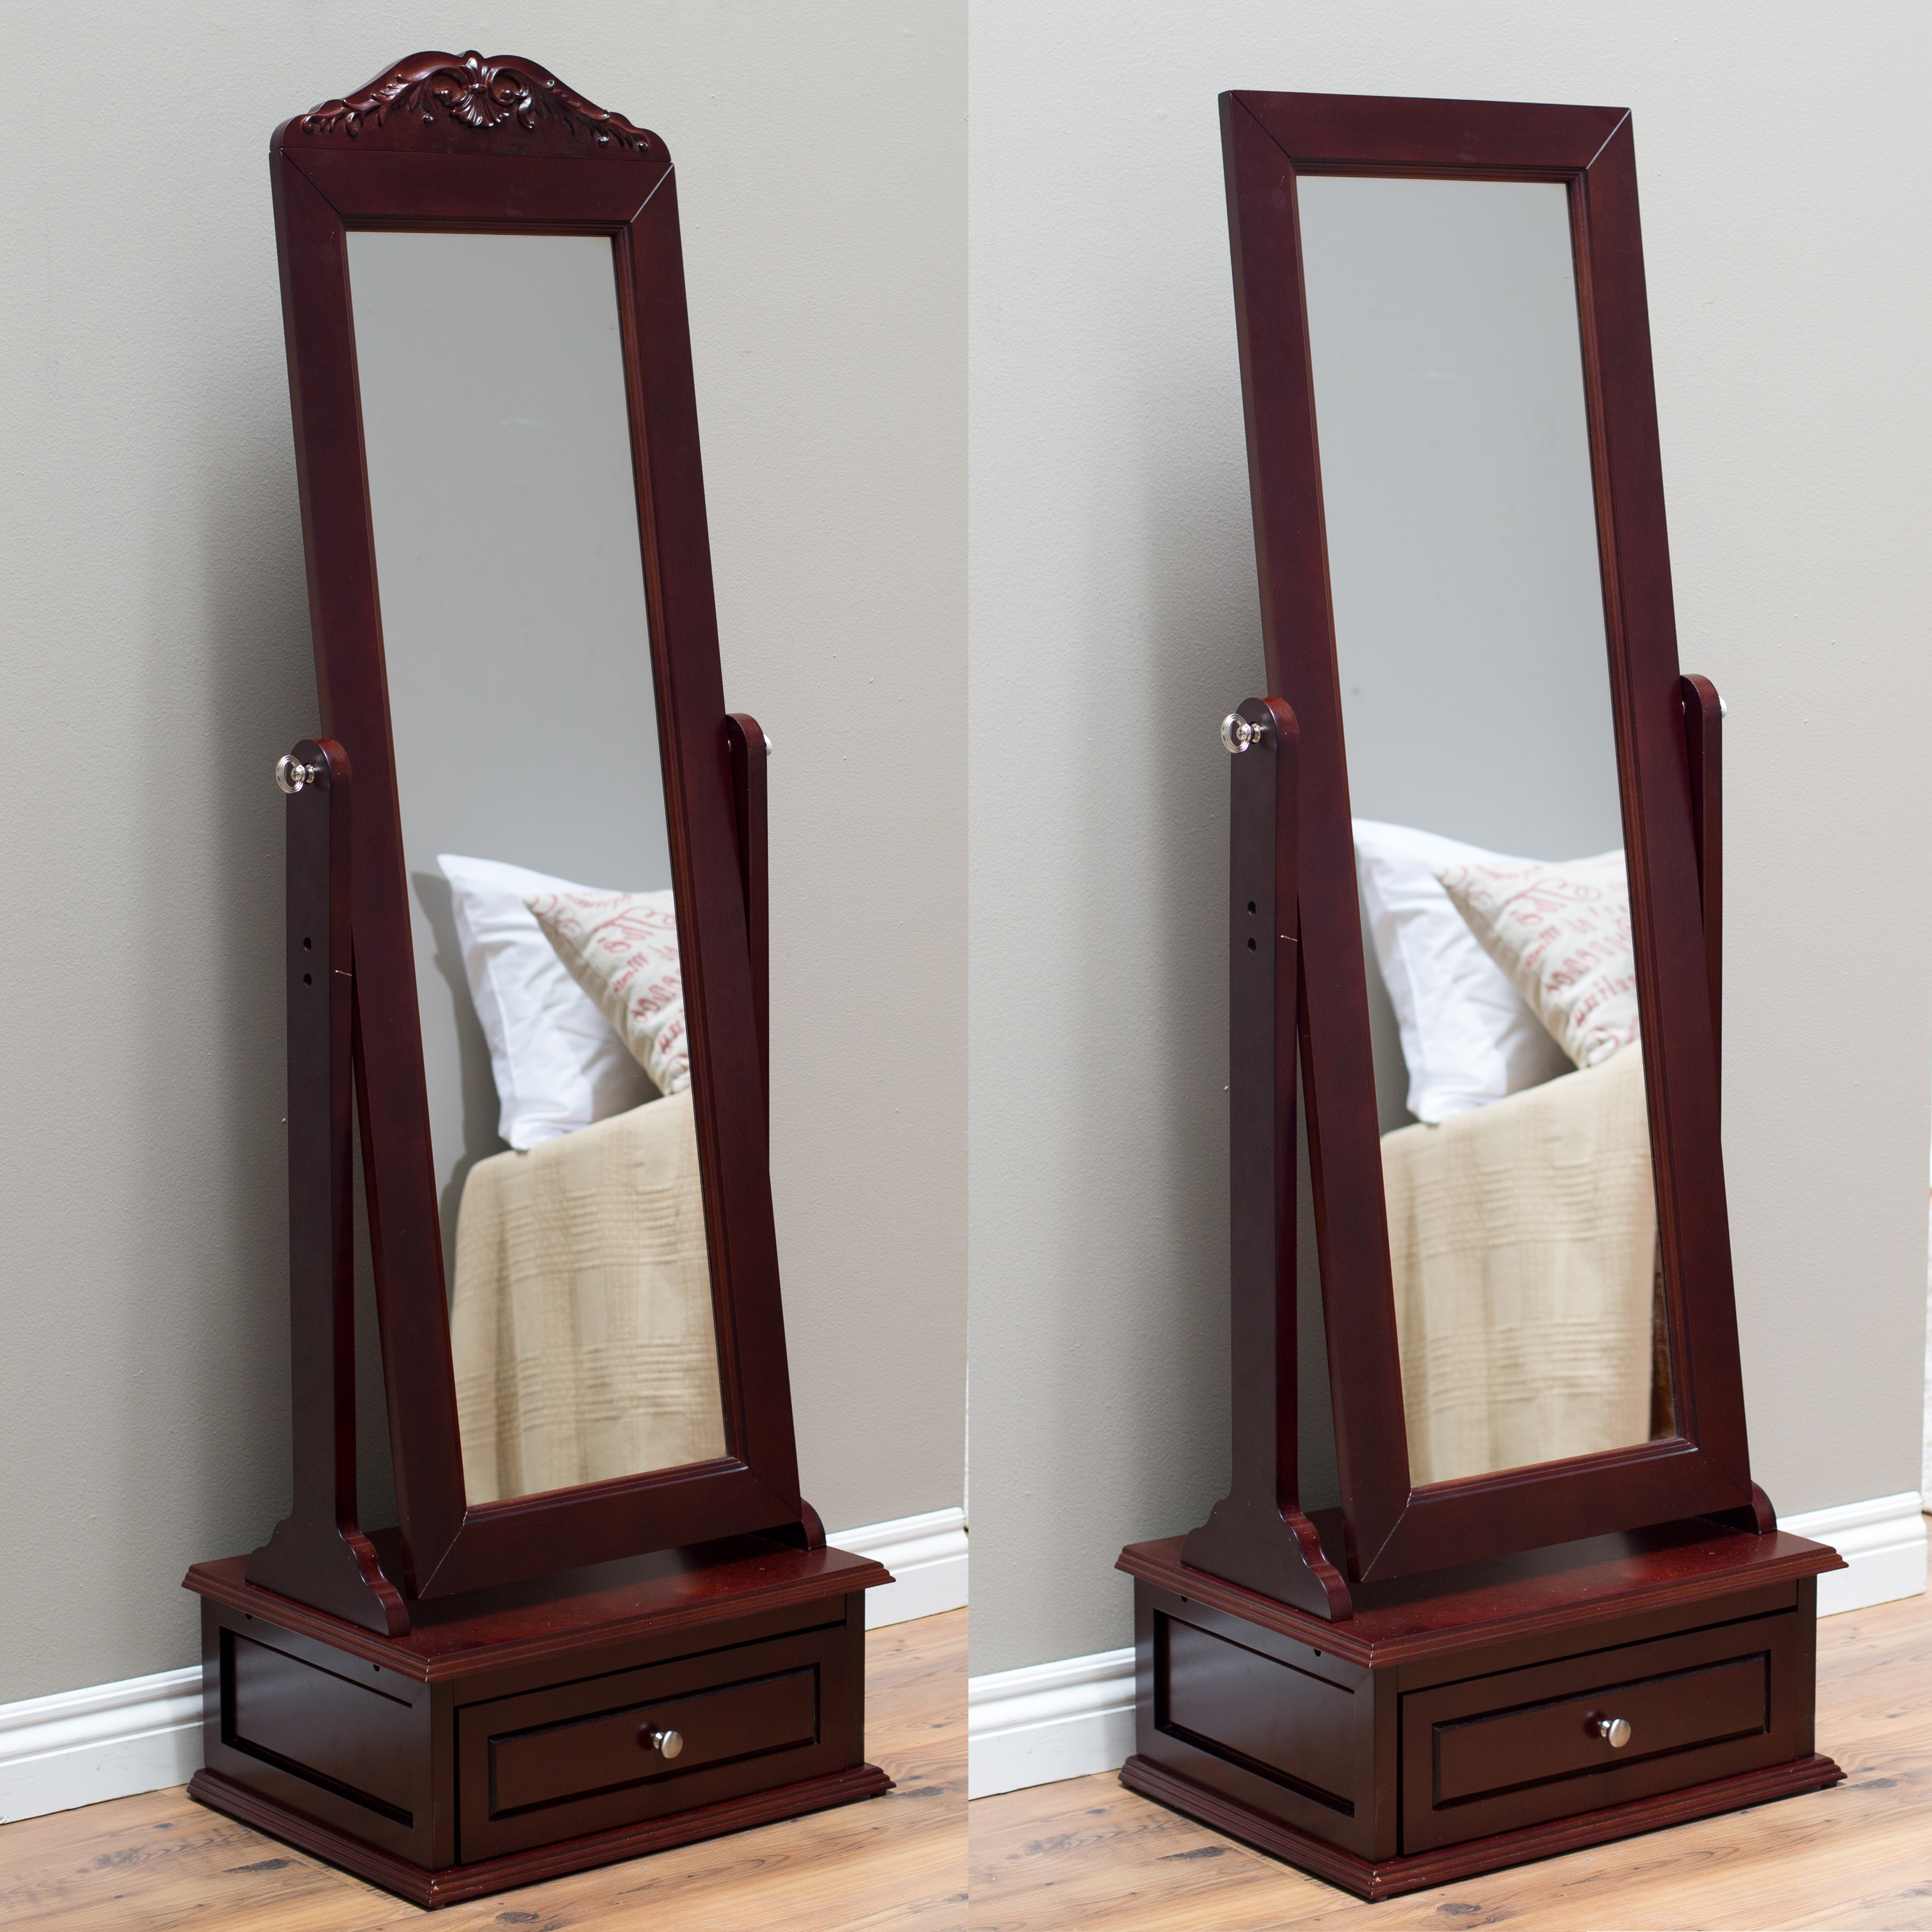 Belham Living Removable Decorative Top Cheval Mirror   Cherry   21.5W X 60H  In. | Hayneedle